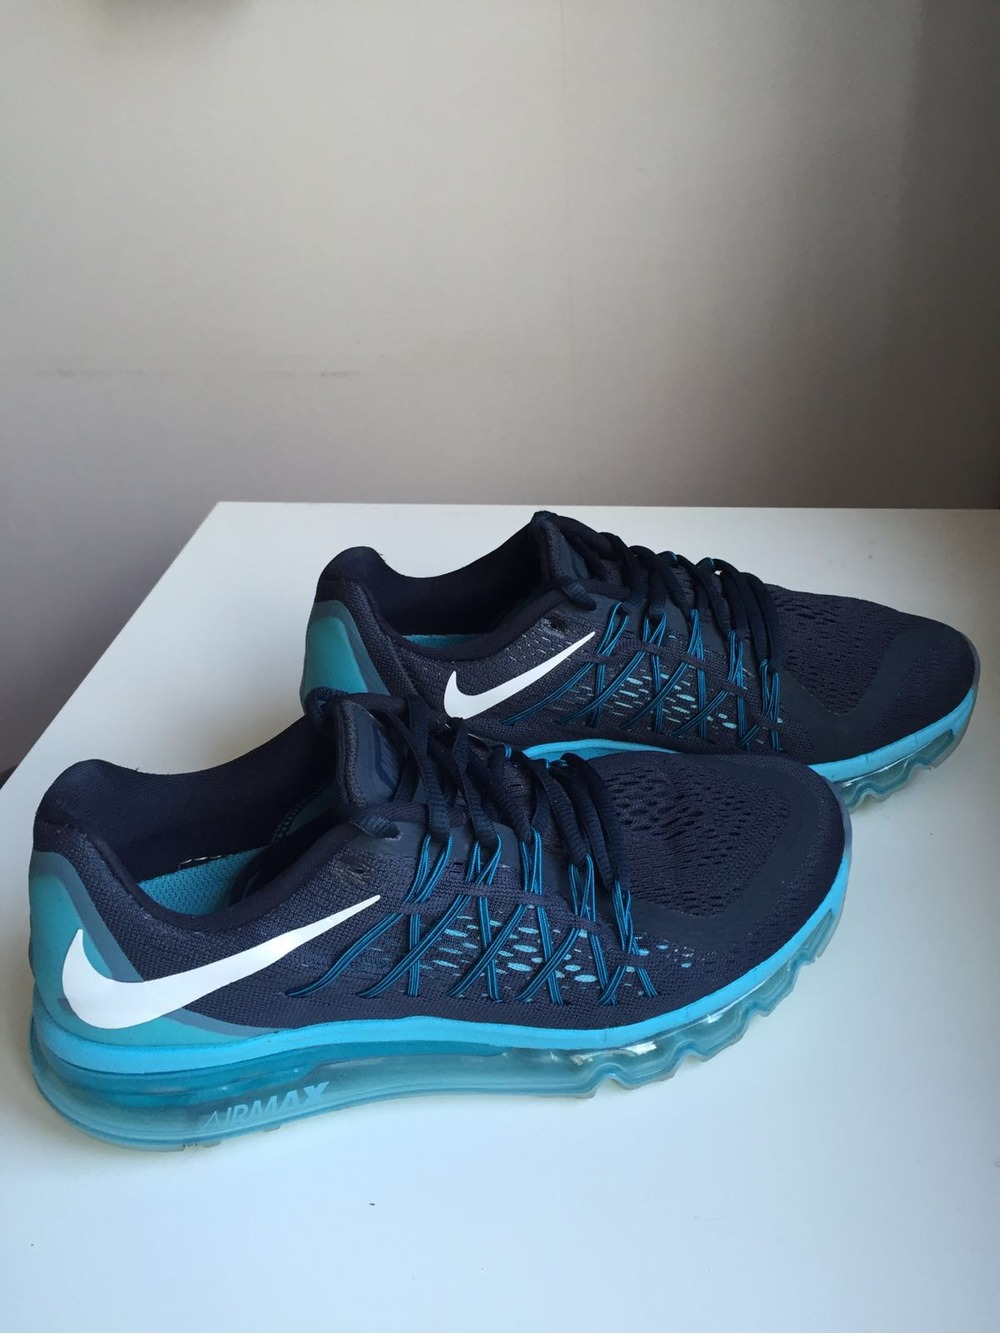 low priced a5afd 34e6b Nike Air Max 2015 Dark Obsidian Blue Lagoon